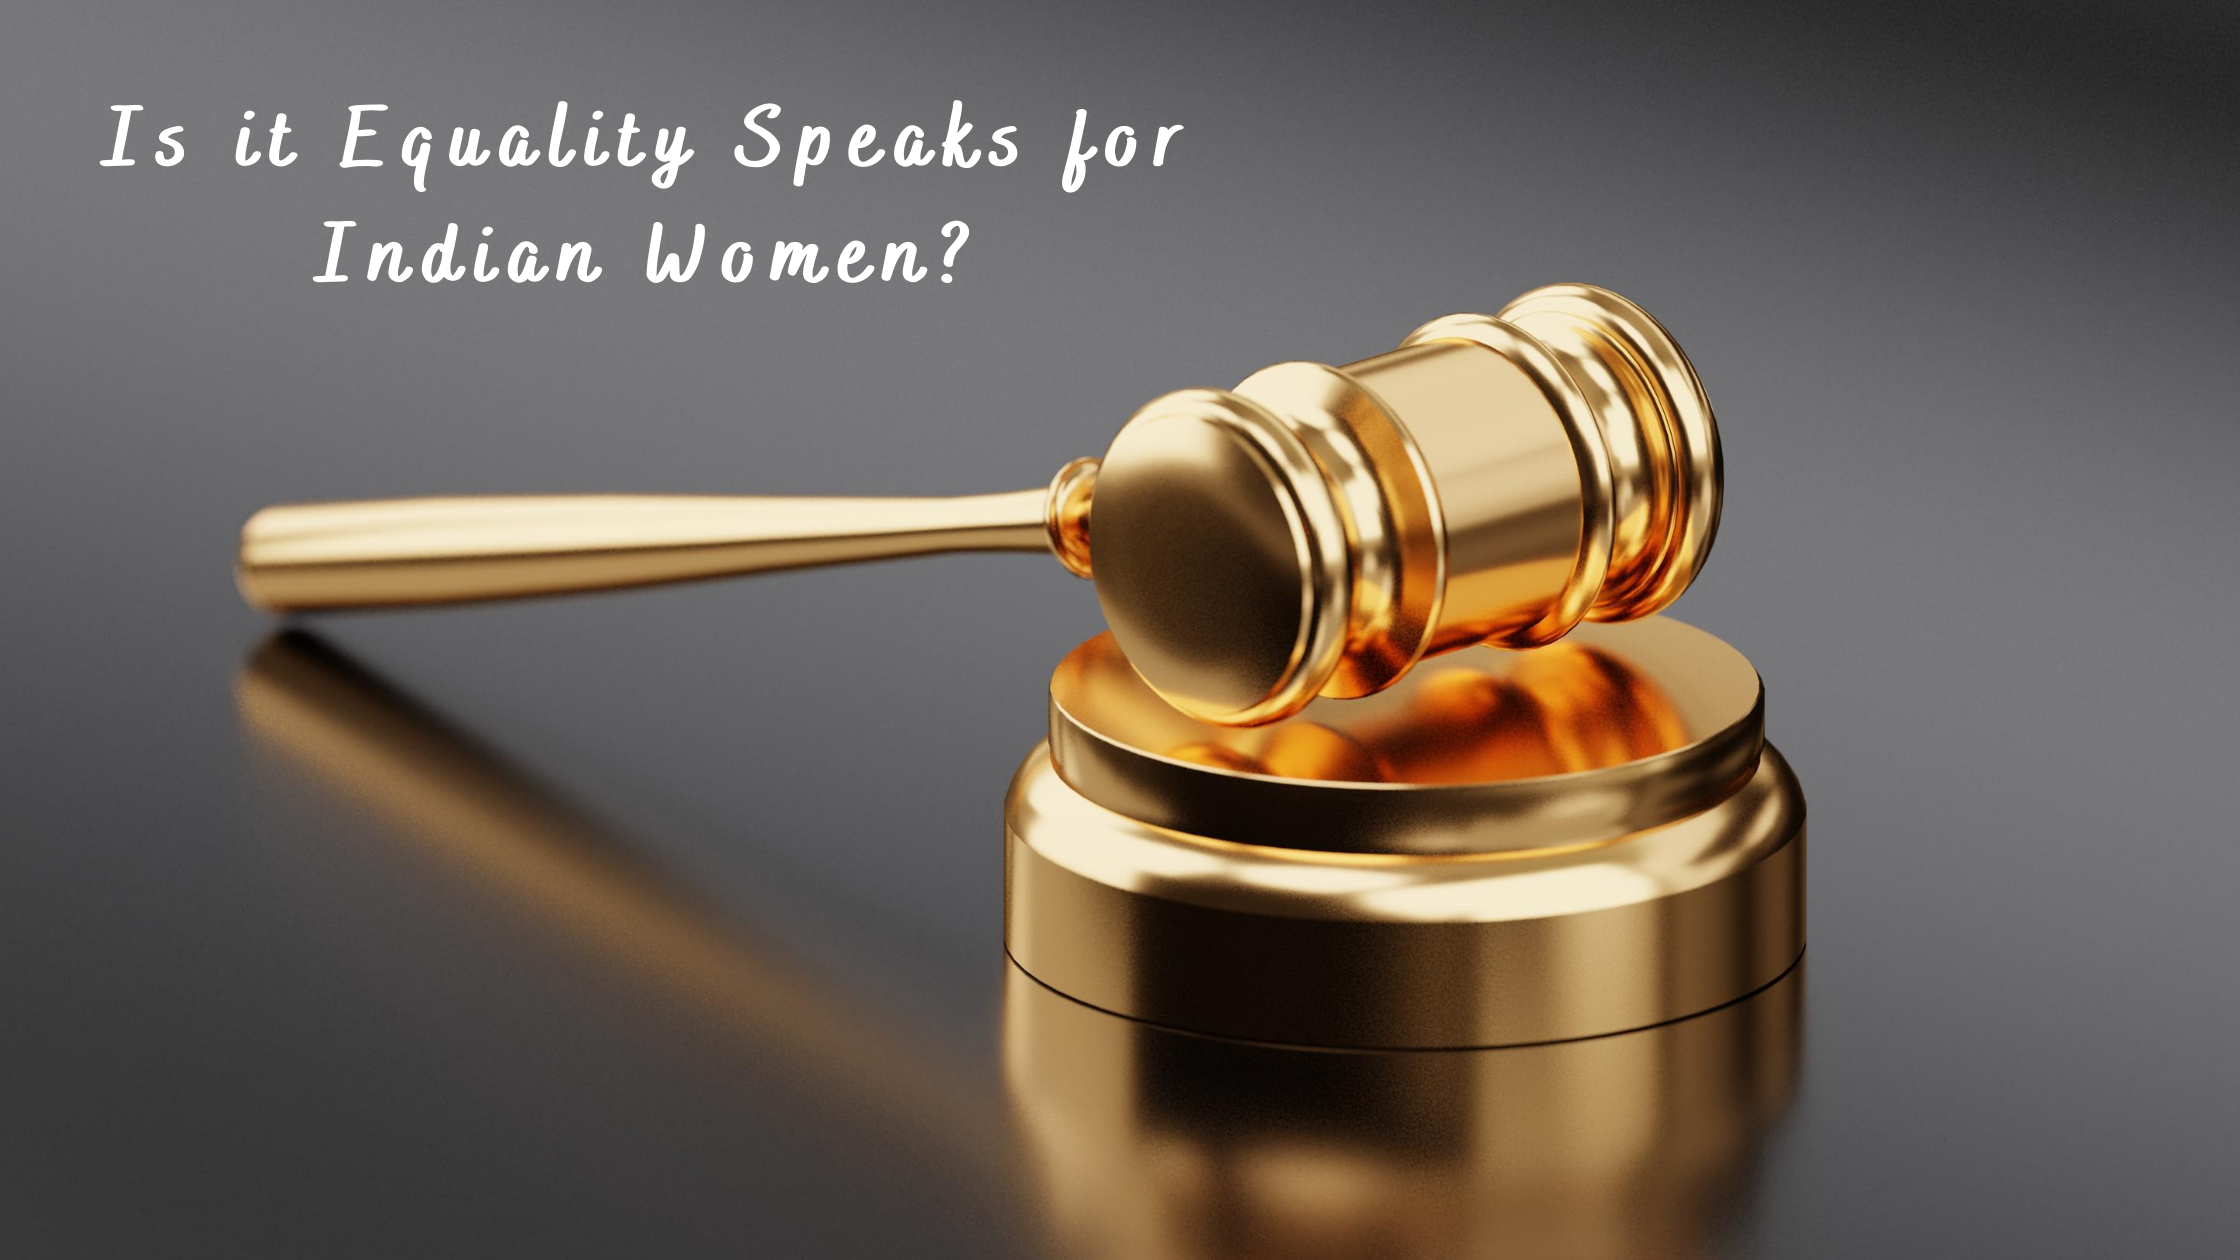 Is it Equality Speaks for Indian Women?